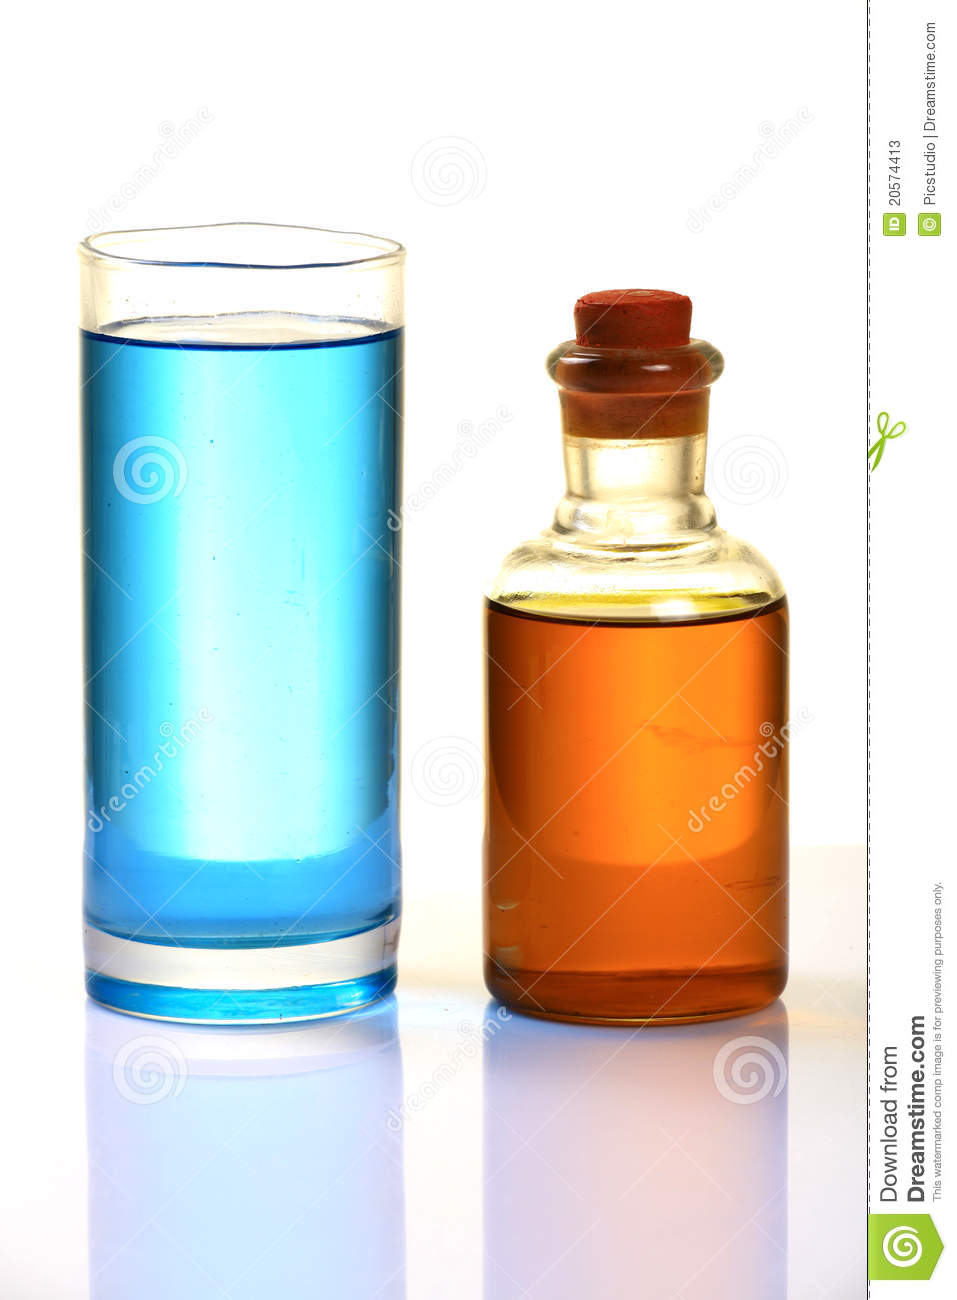 11 661 Kerosene Photos Free Royalty Free Stock Photos From Dreamstime